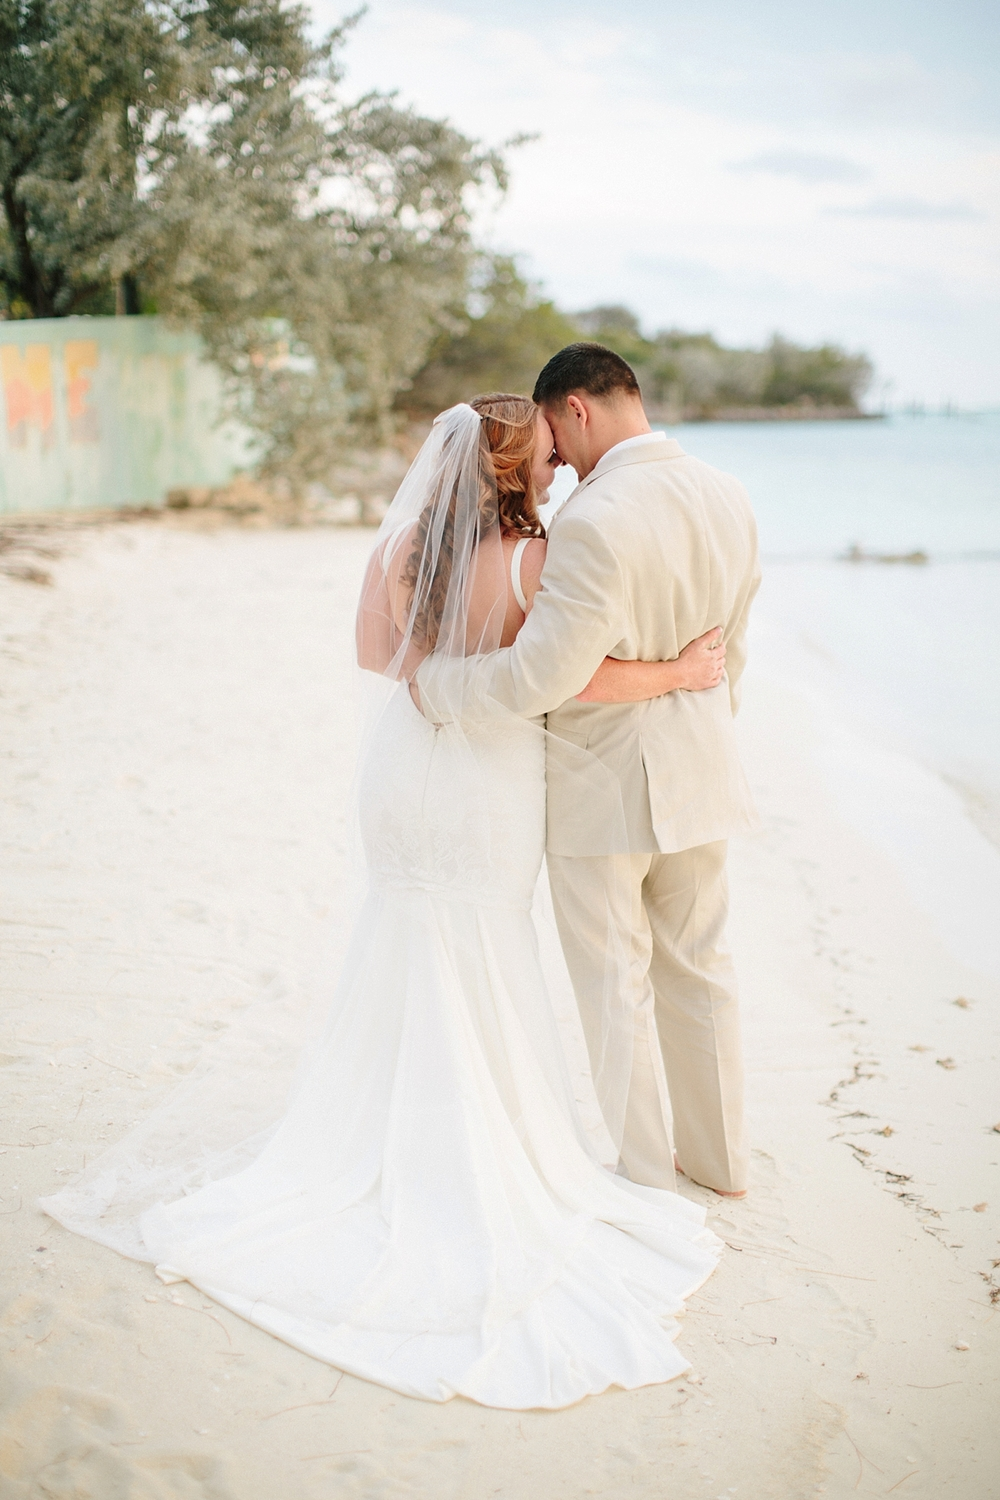 bahamas-destination-wedding-photographer-island-private-ceremony-staniel-cay_0034.jpg